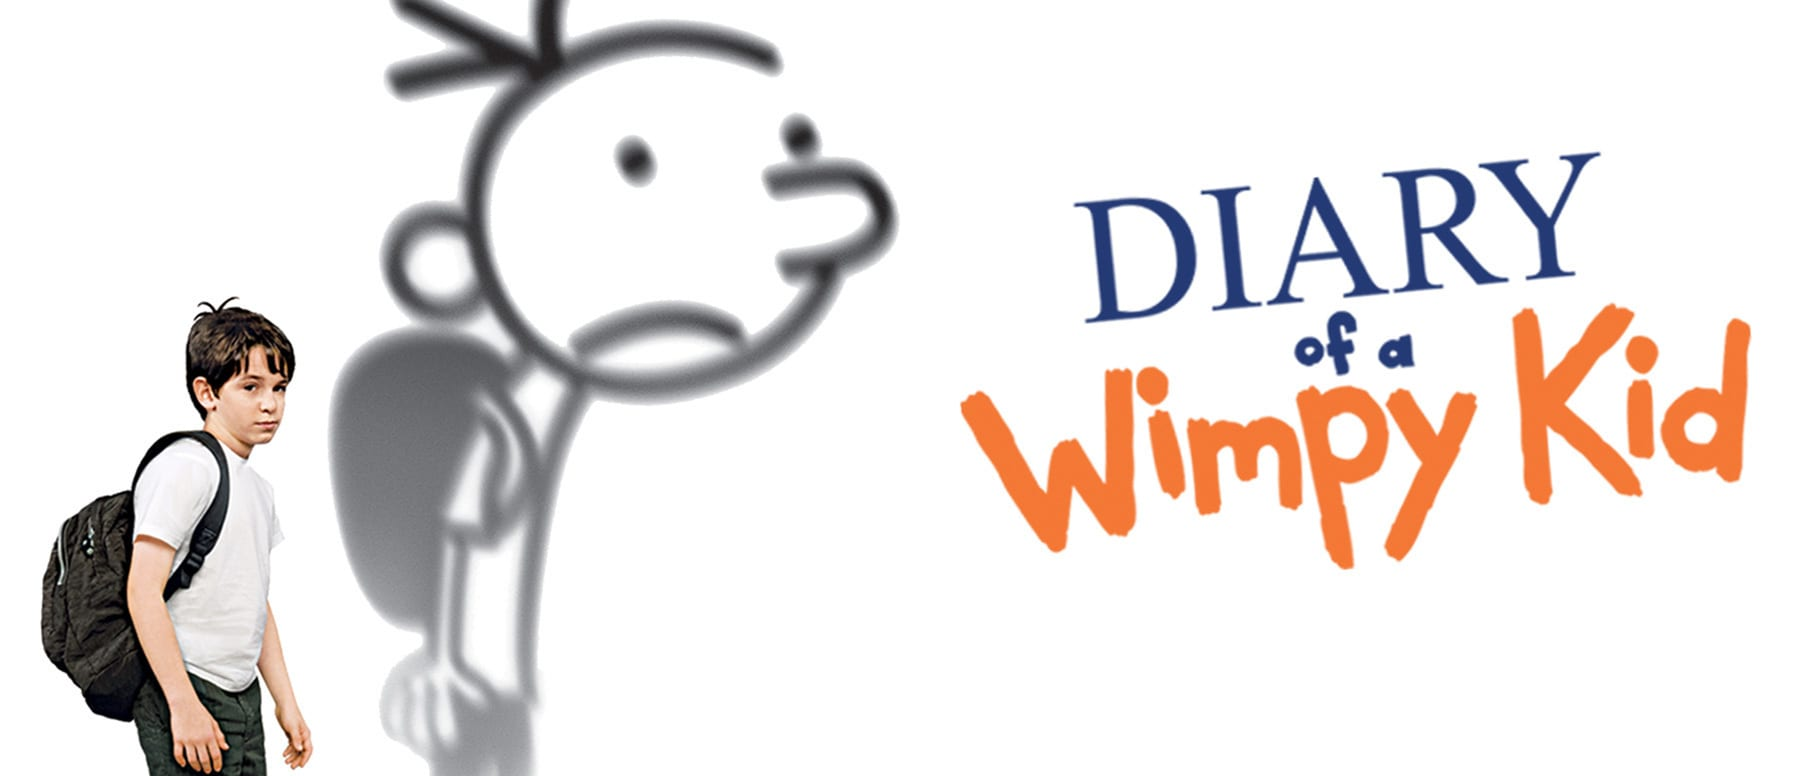 Diary of a Wimpy Kid Hero